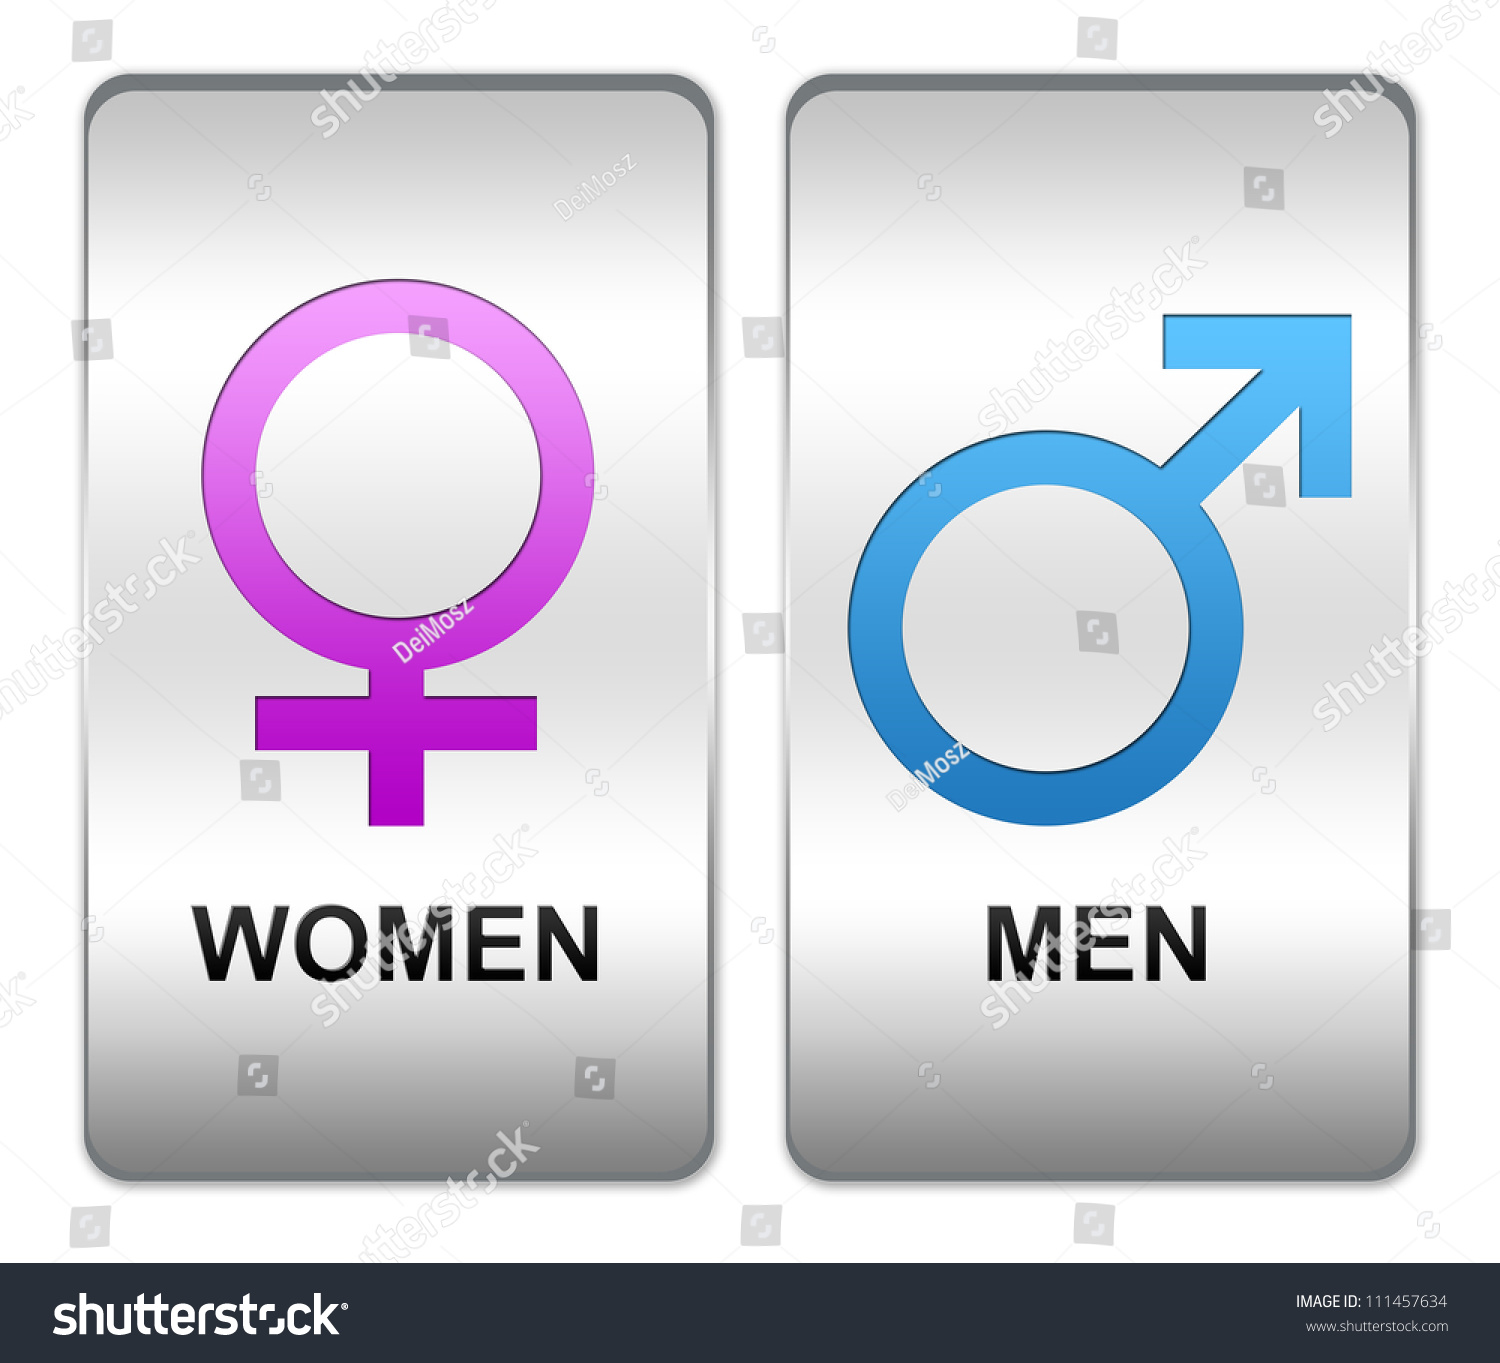 men and women restroom or toilet sign with blue men and pink women sign on square